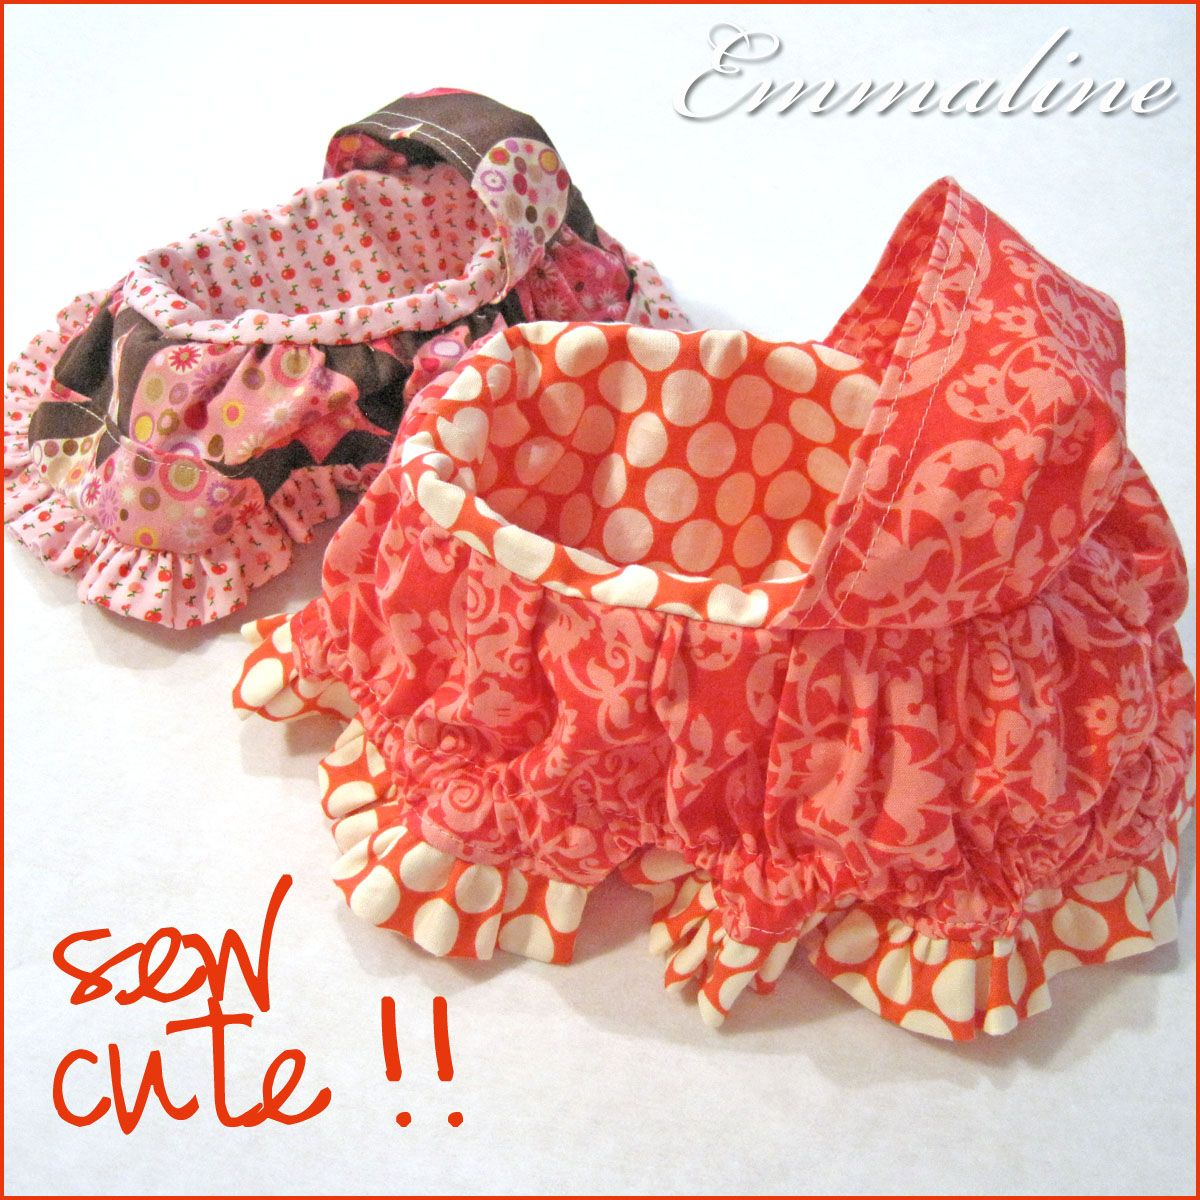 Fabric Cradle Purse : A new take on the old crocheted fave ...